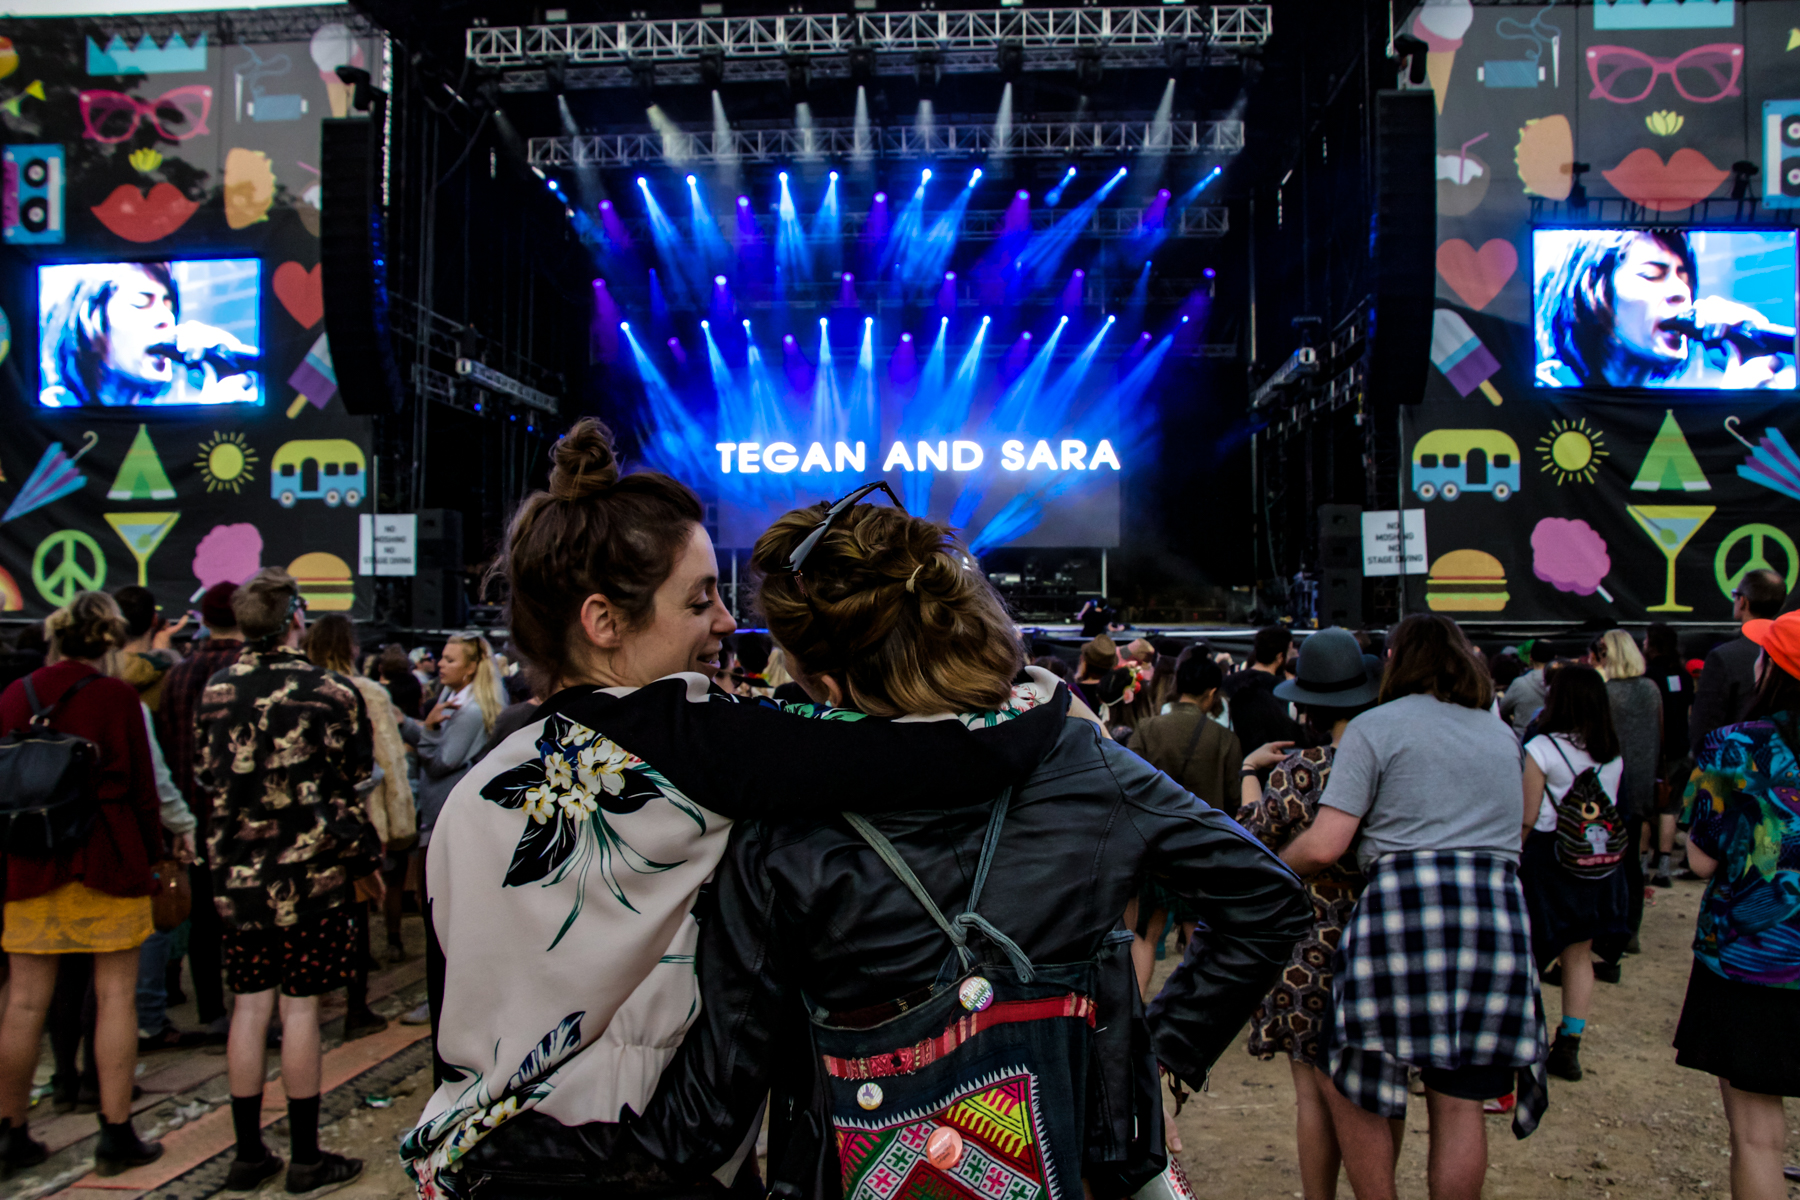 Tegan and Sara // Photo by Lior Phillips